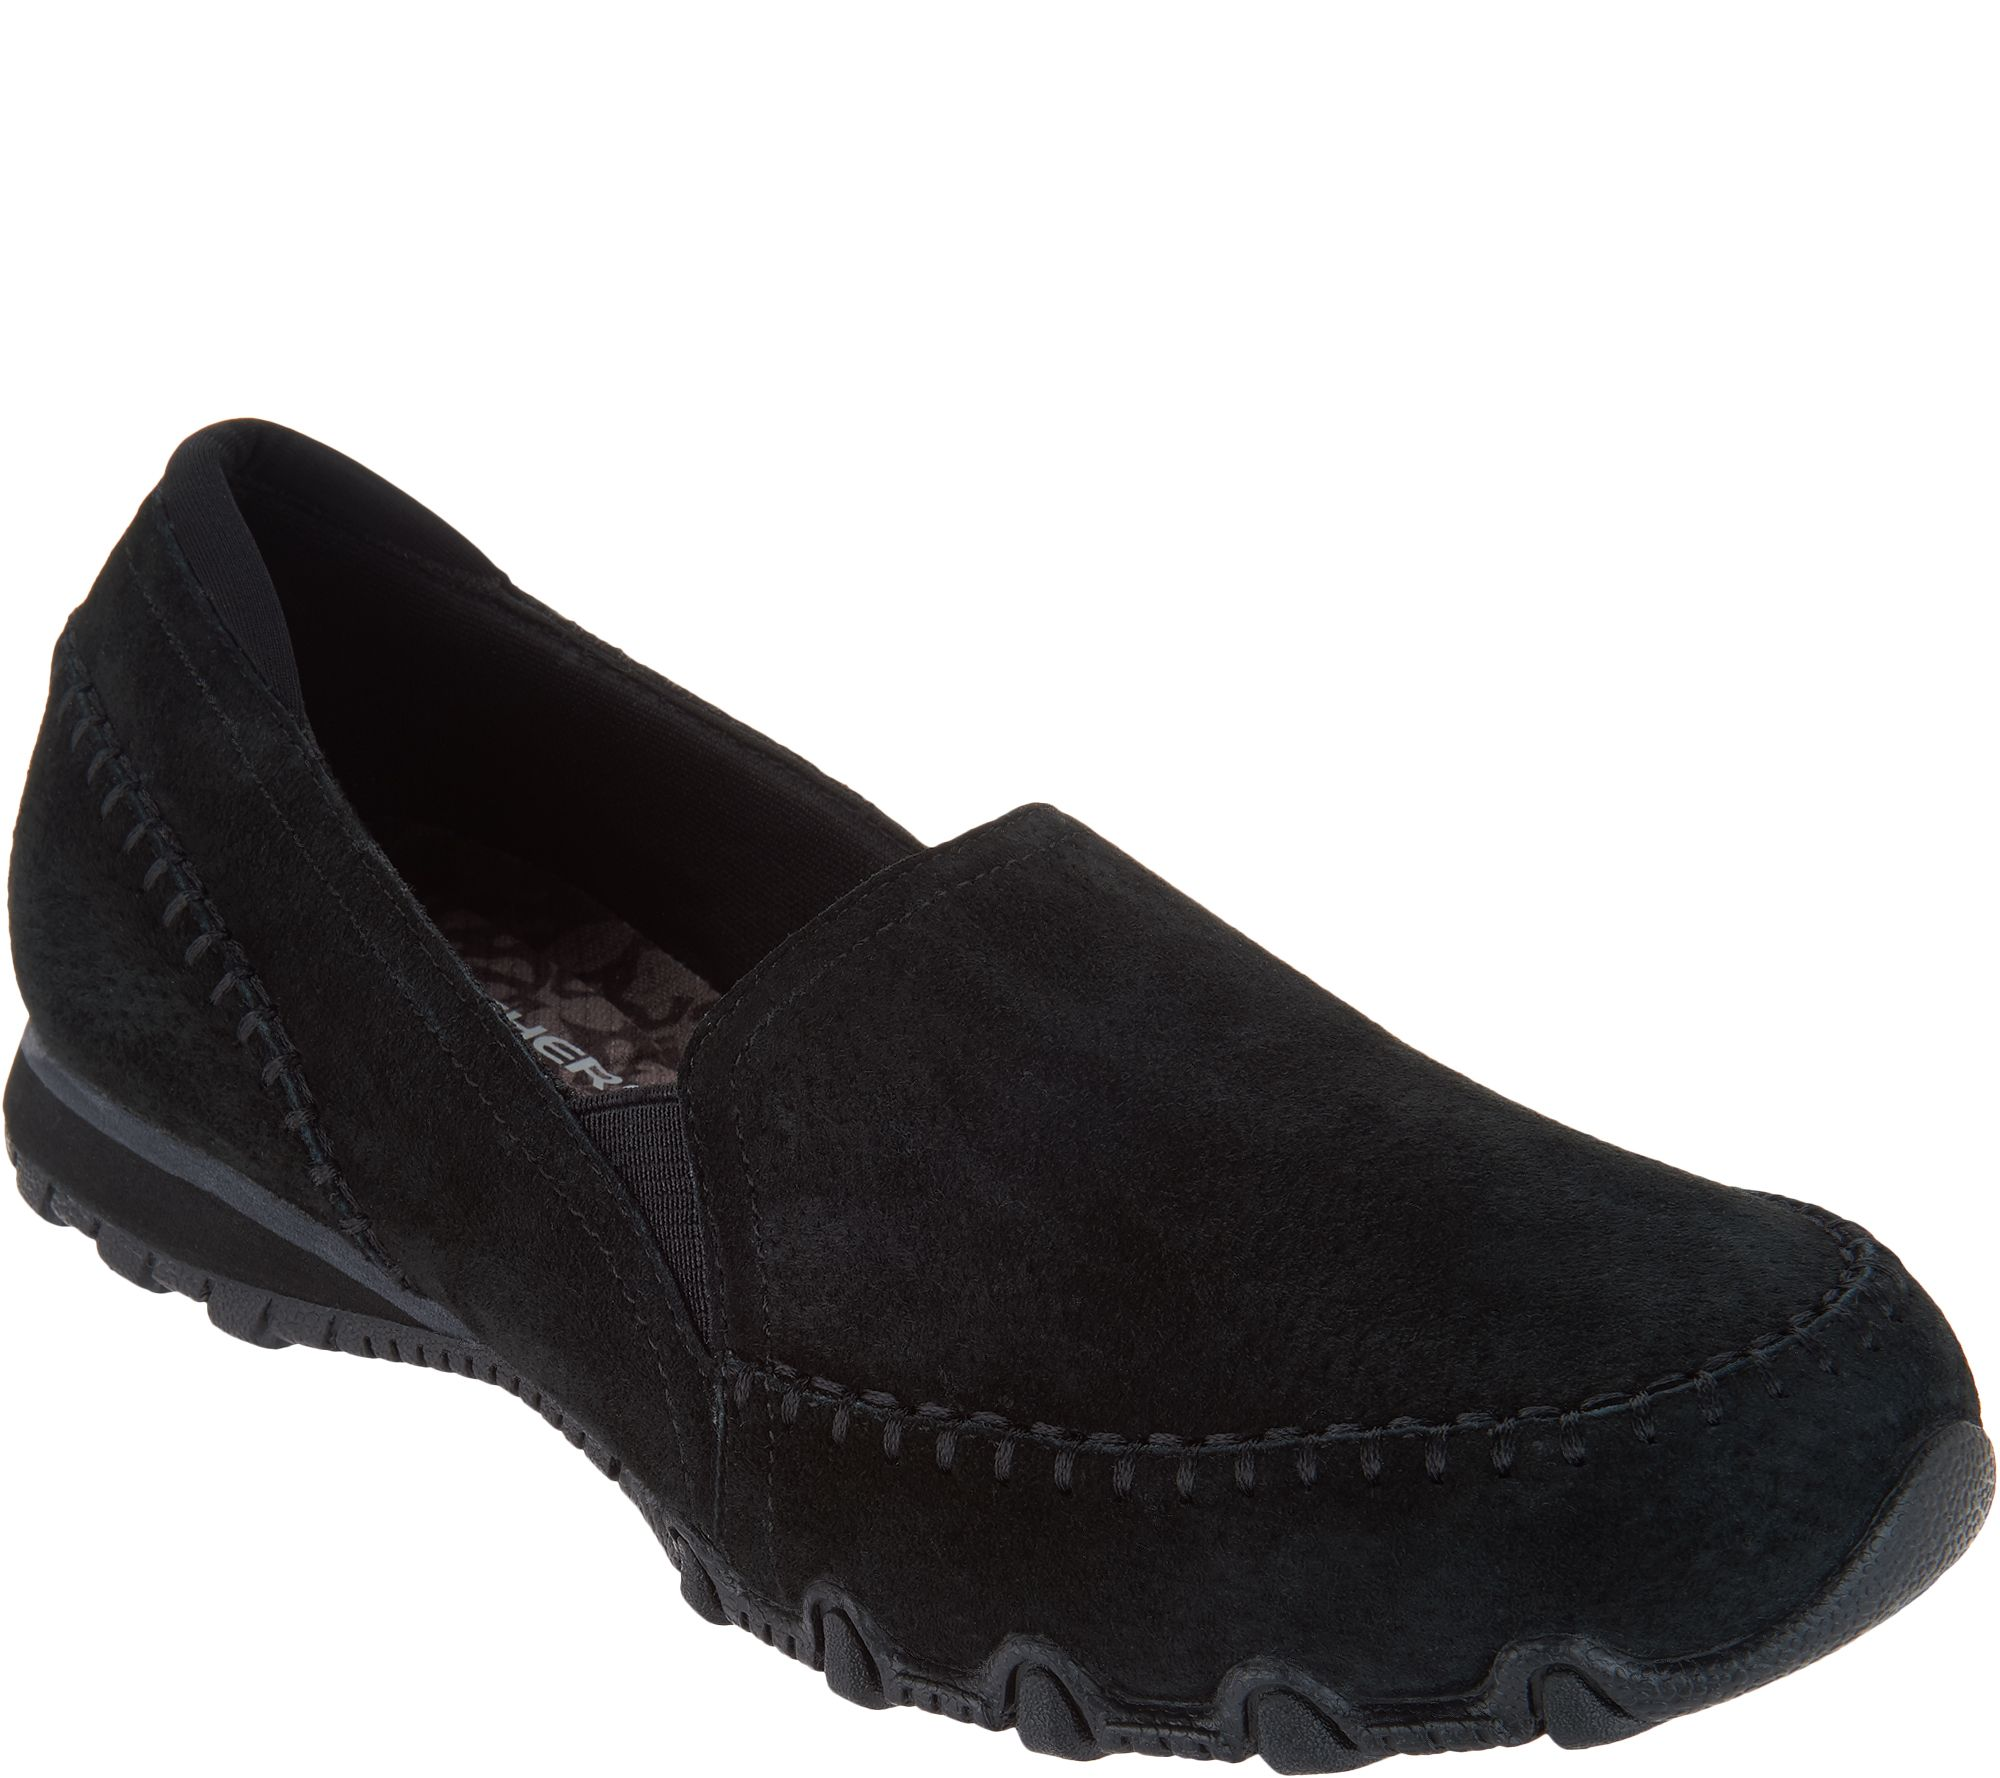 2c76ba894ce16 Skechers Relaxed Fit Suede Slip-On Shoes - Alumni — QVC.com